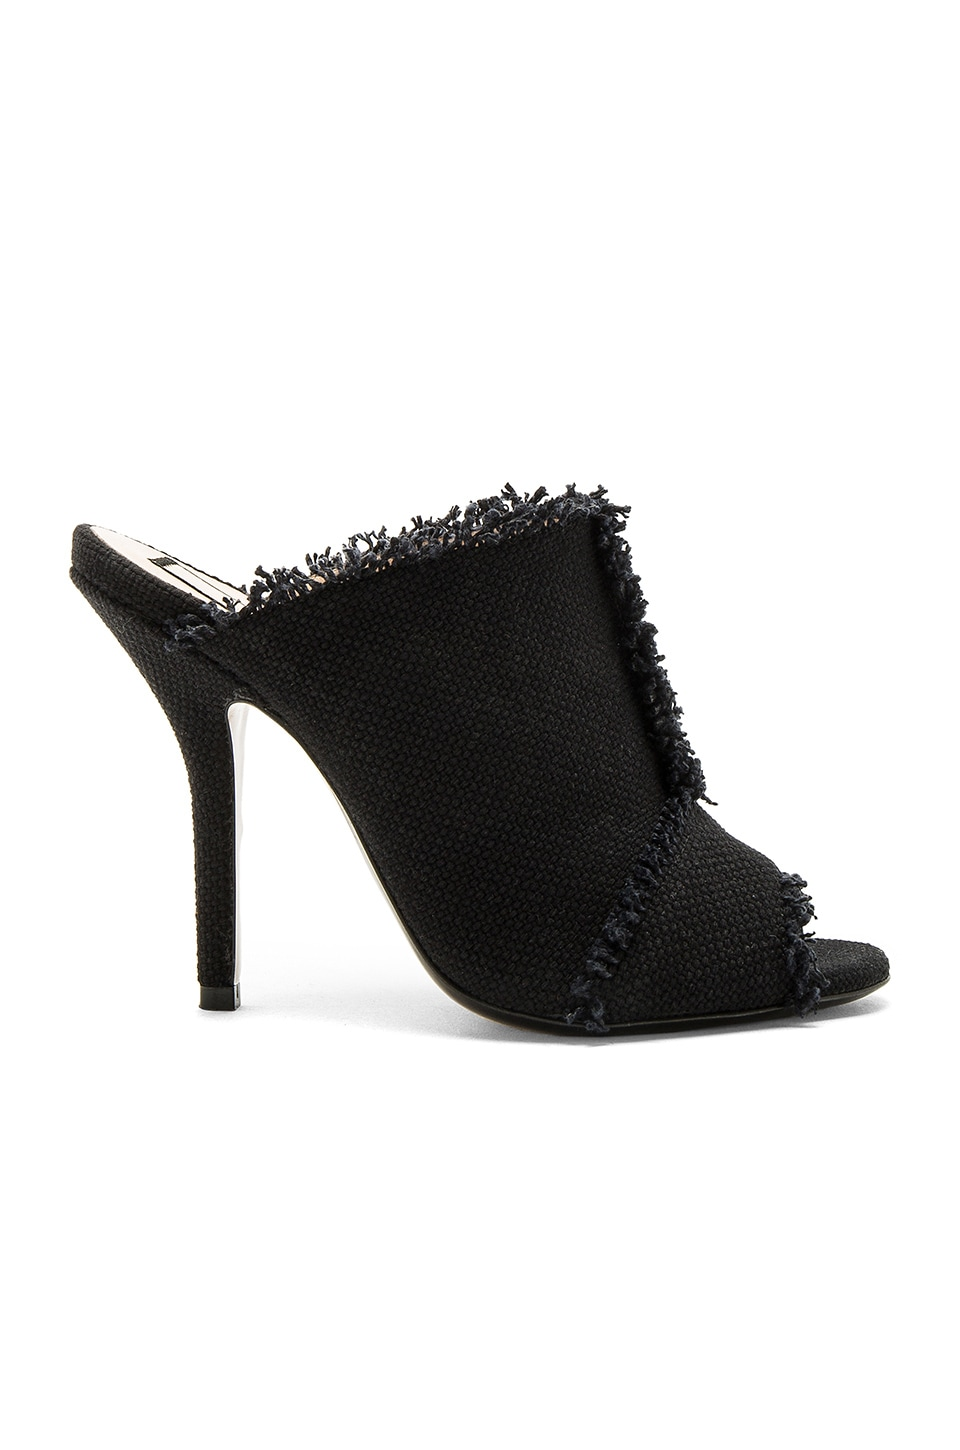 No. 21 Frayed Mule in Nero